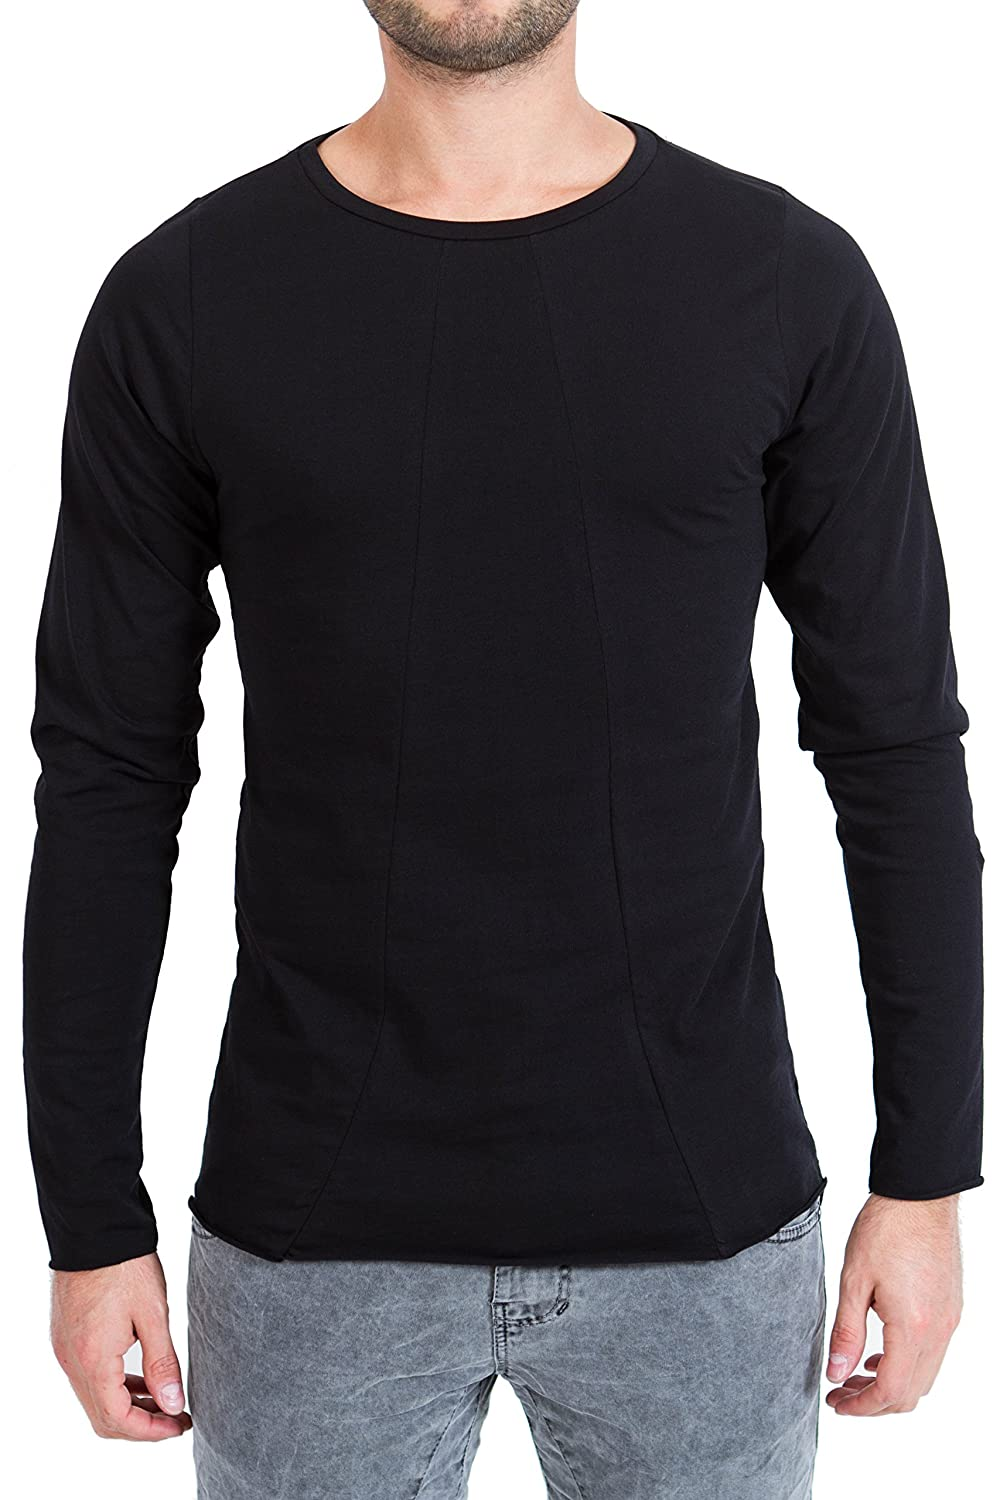 Absolushop Men's Jumper